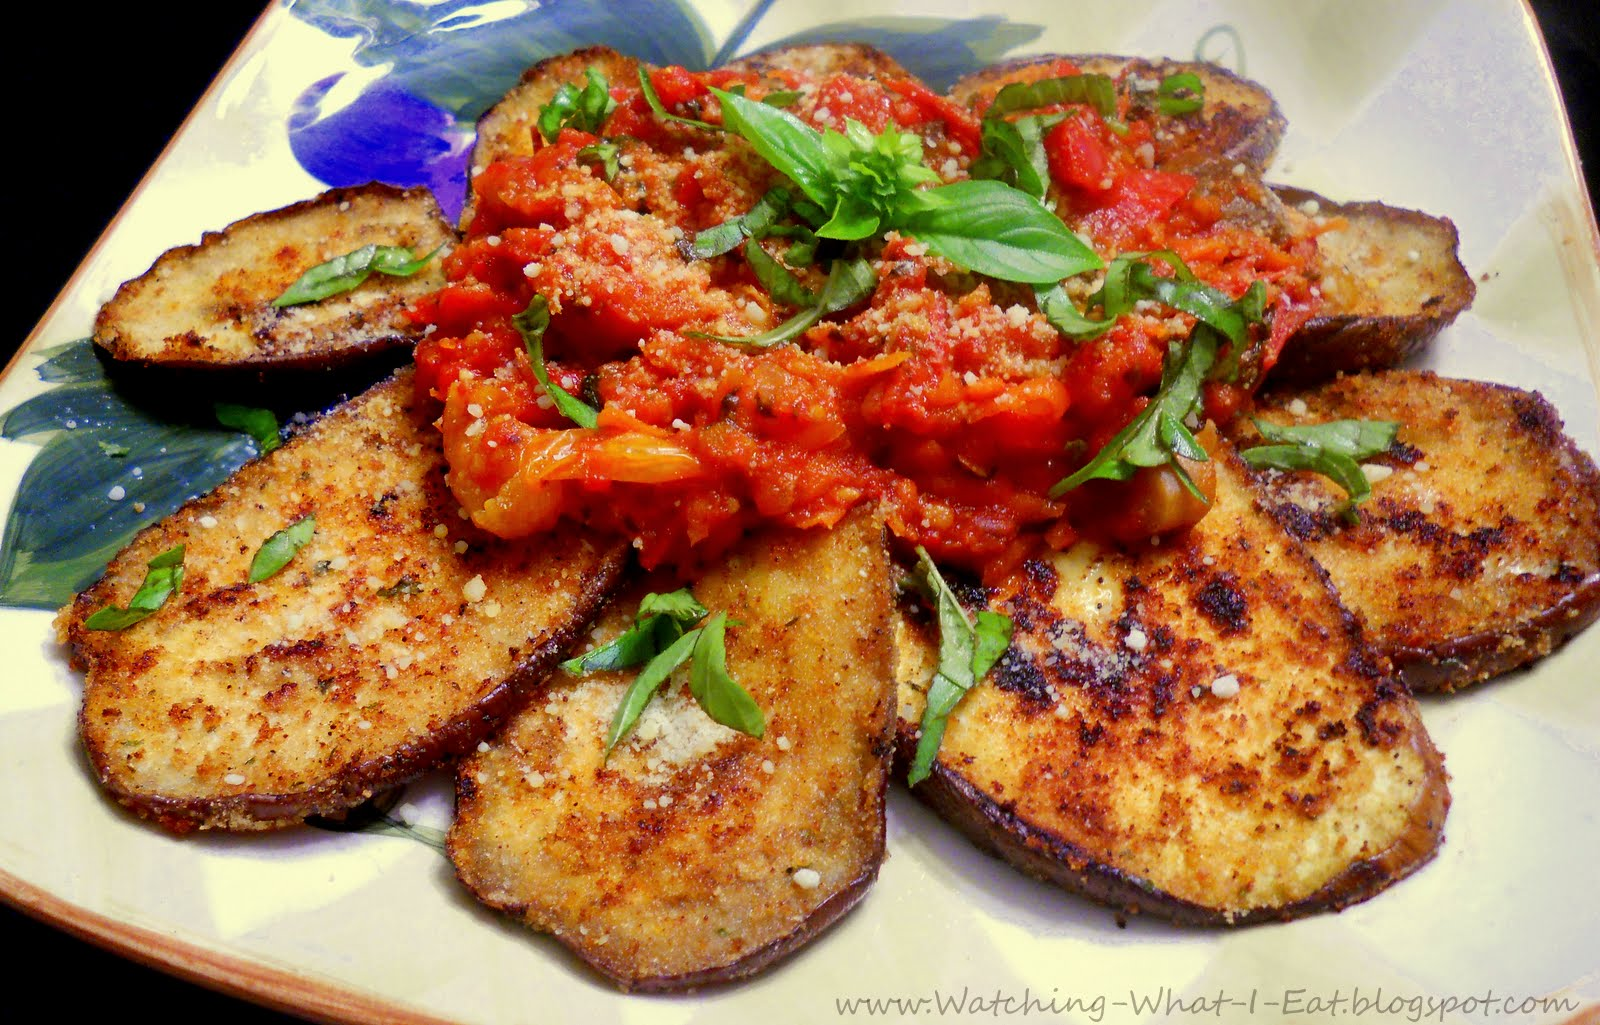 Watching What I Eat: Low Fat Eggplant Parmesan ~ Meatless Monday